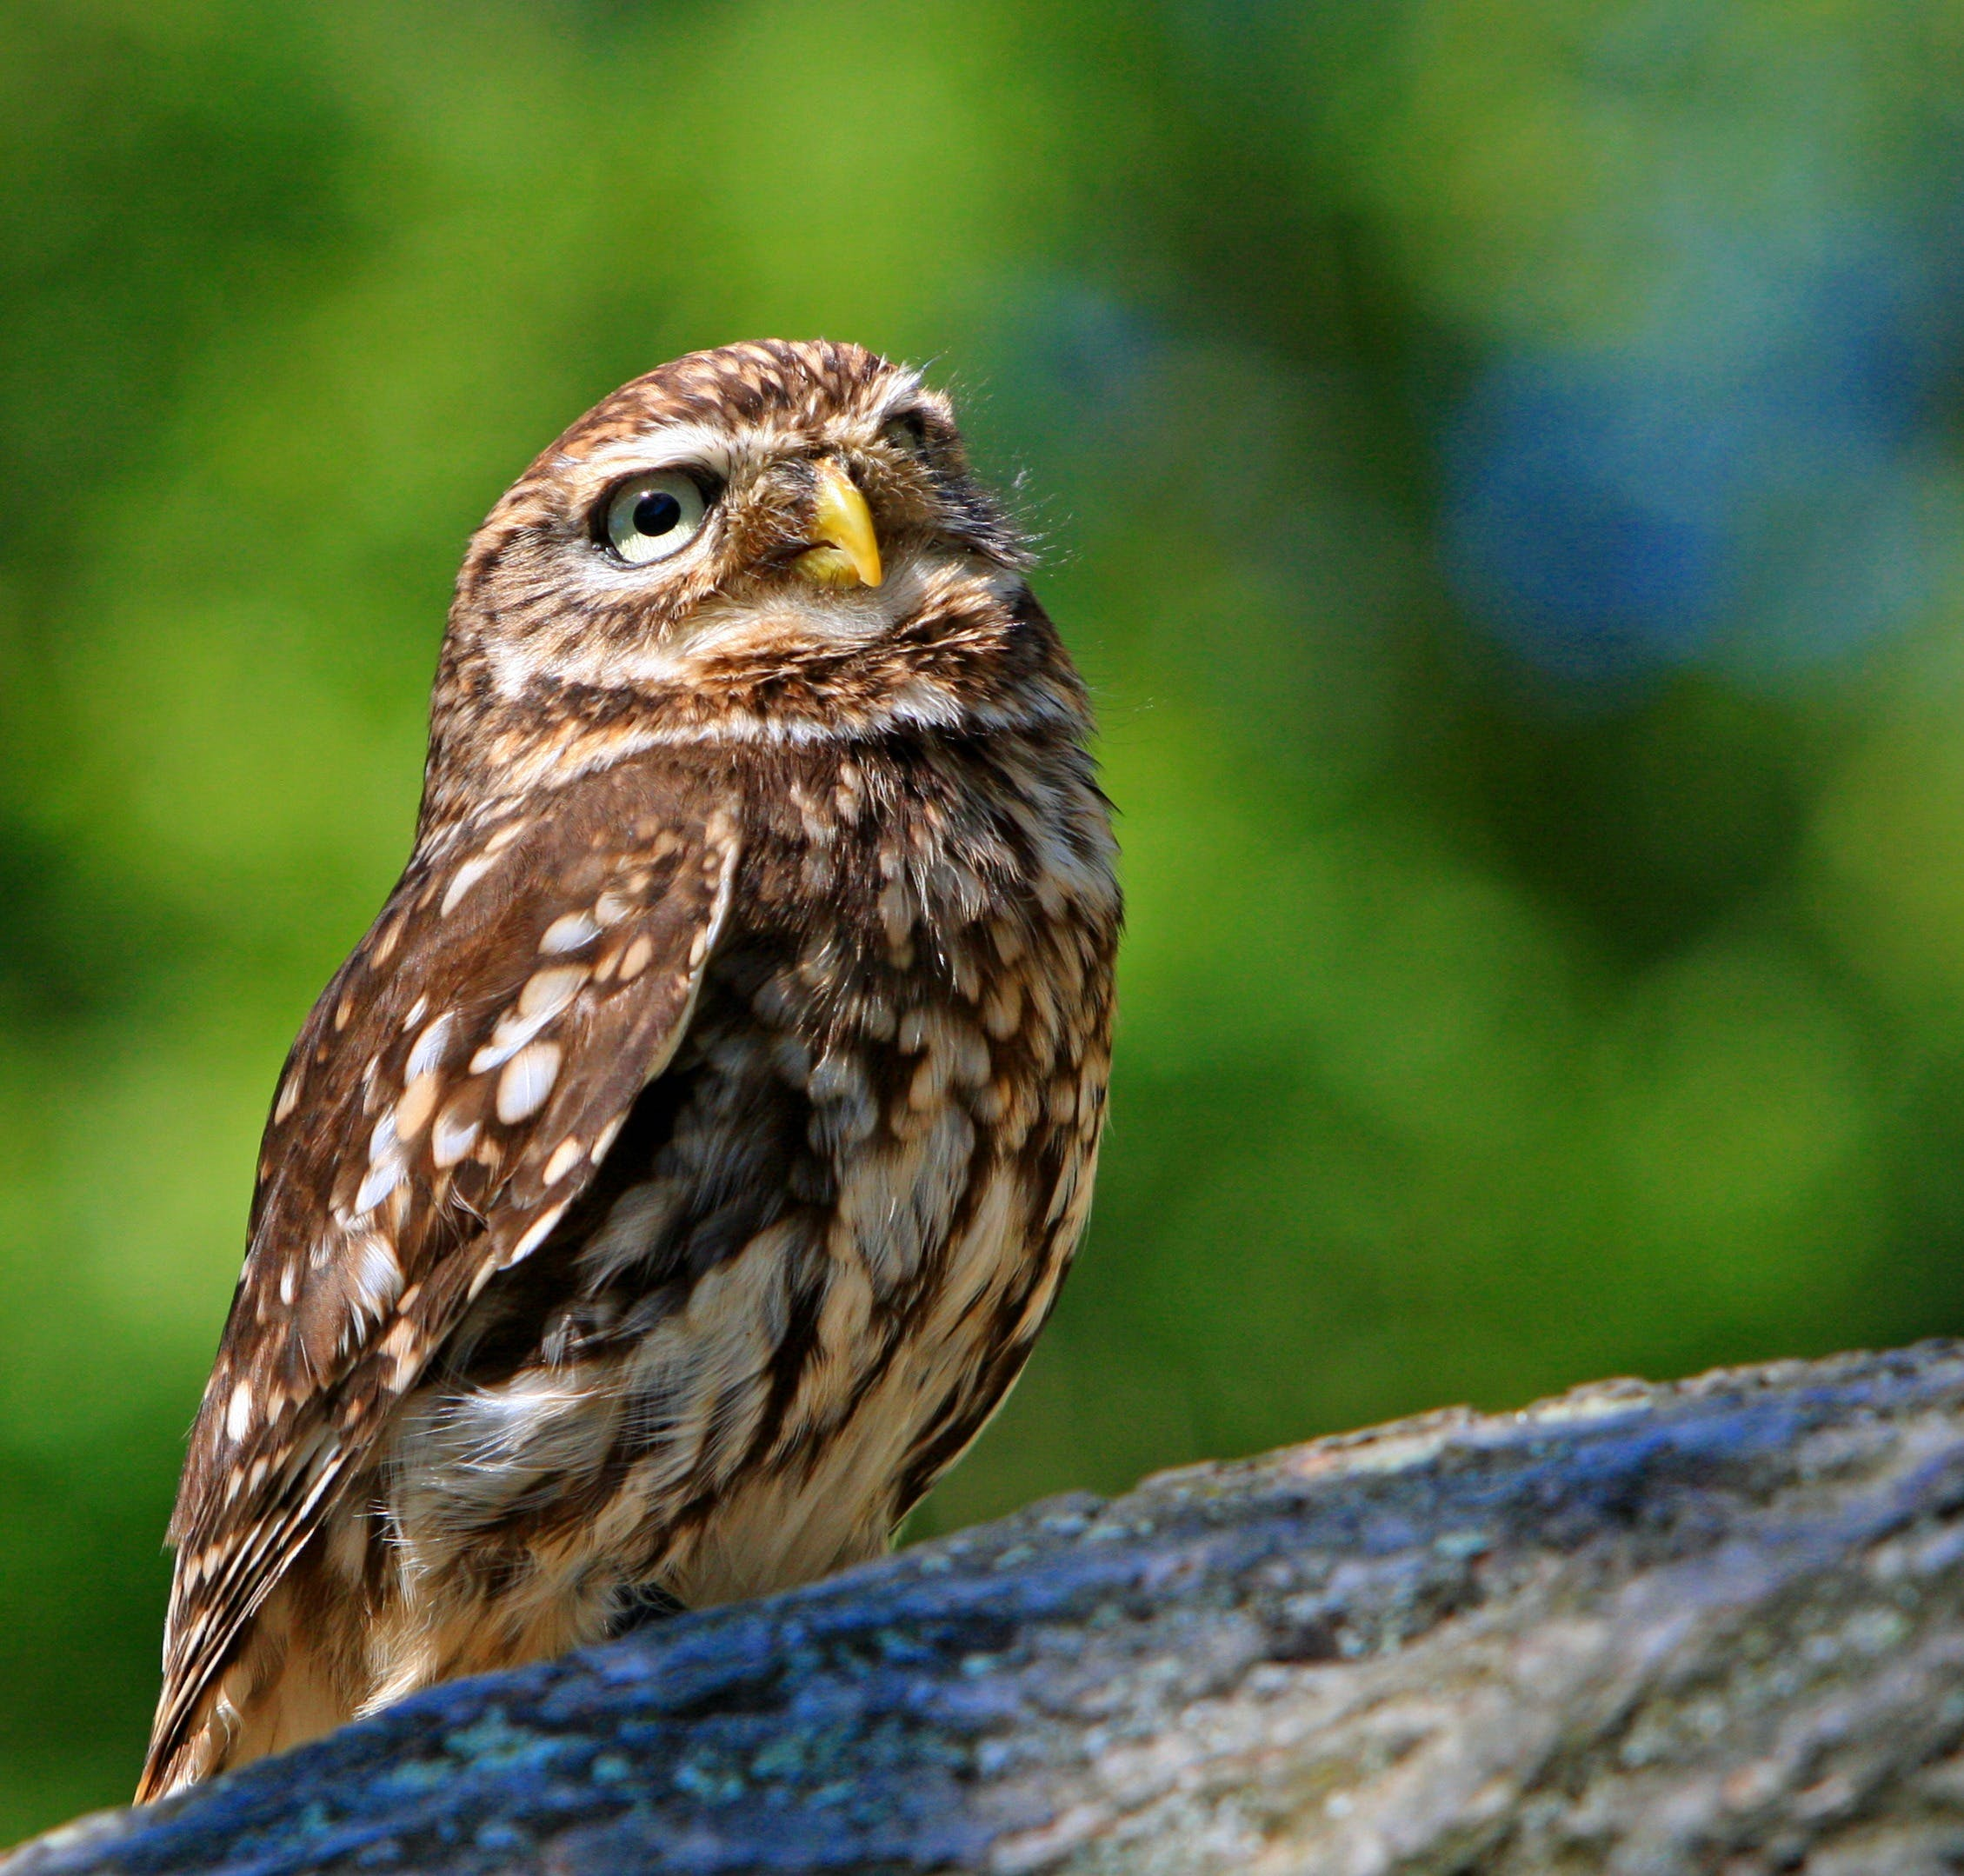 Brown White Owl in a Green Blurry Background